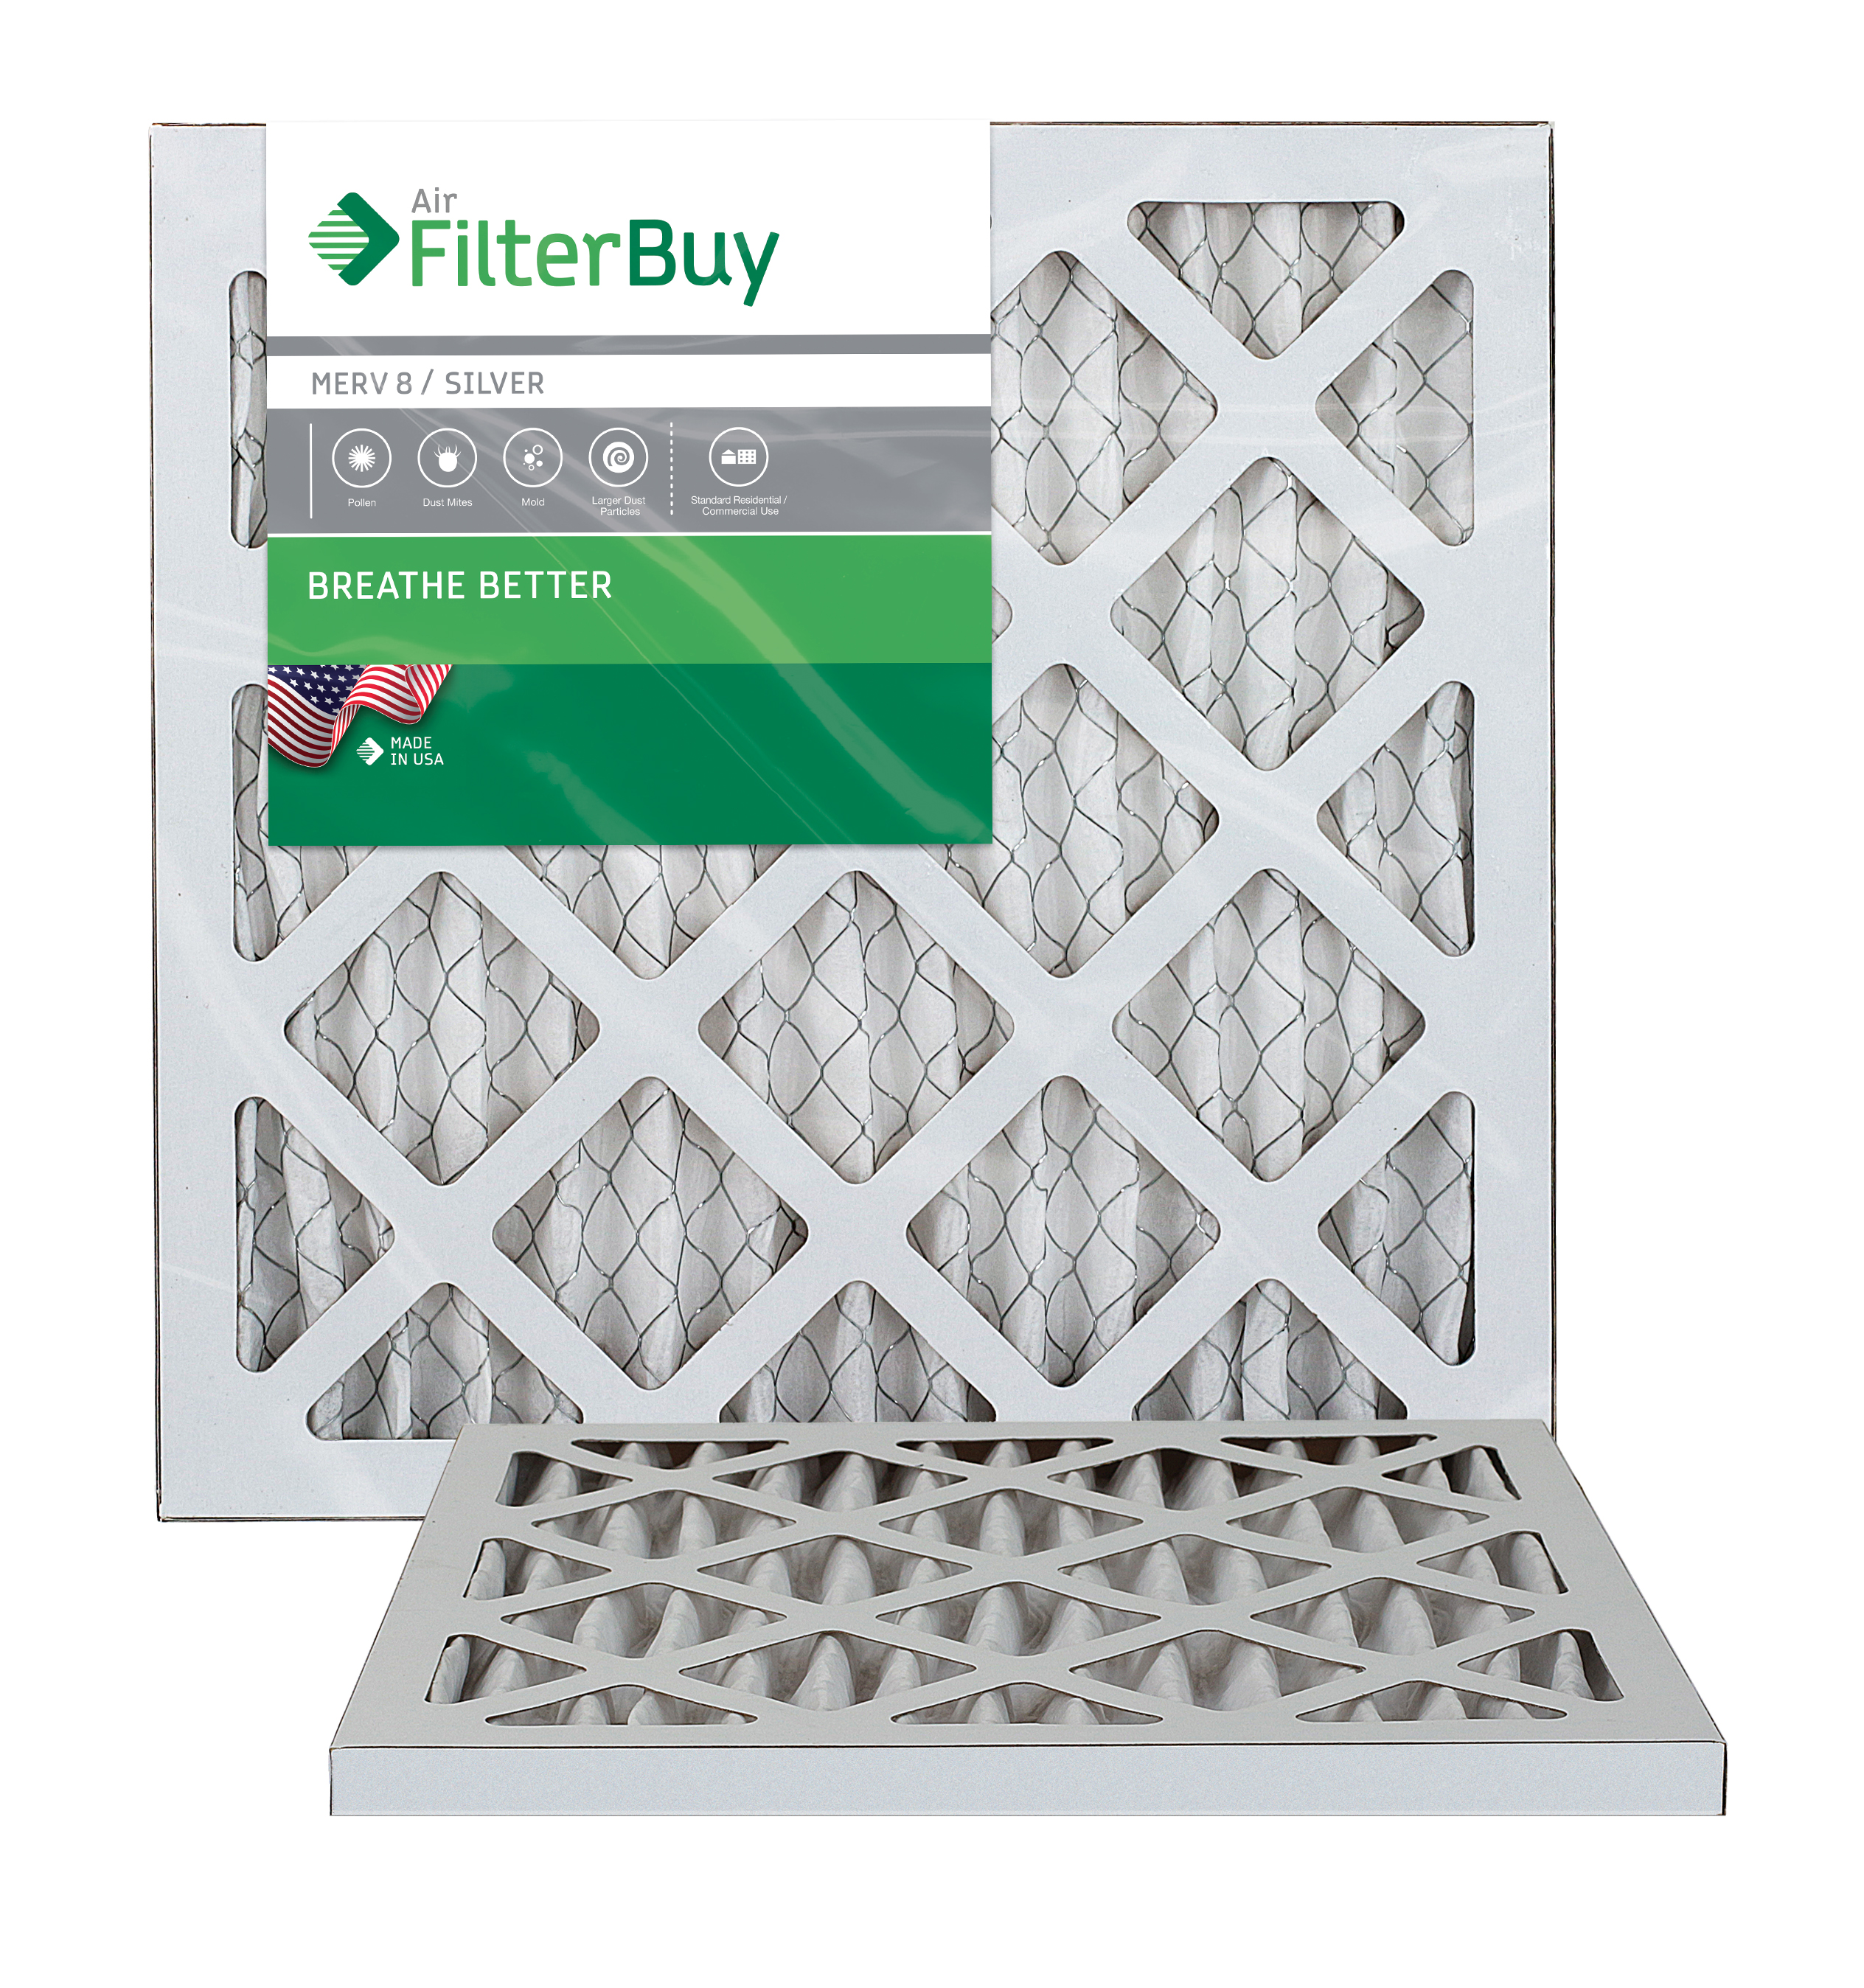 10x10x1 AFB Silver MERV 8 Pleated AC Furnace Air Filter. Pack of 2 Filters. 100% produced in the USA.